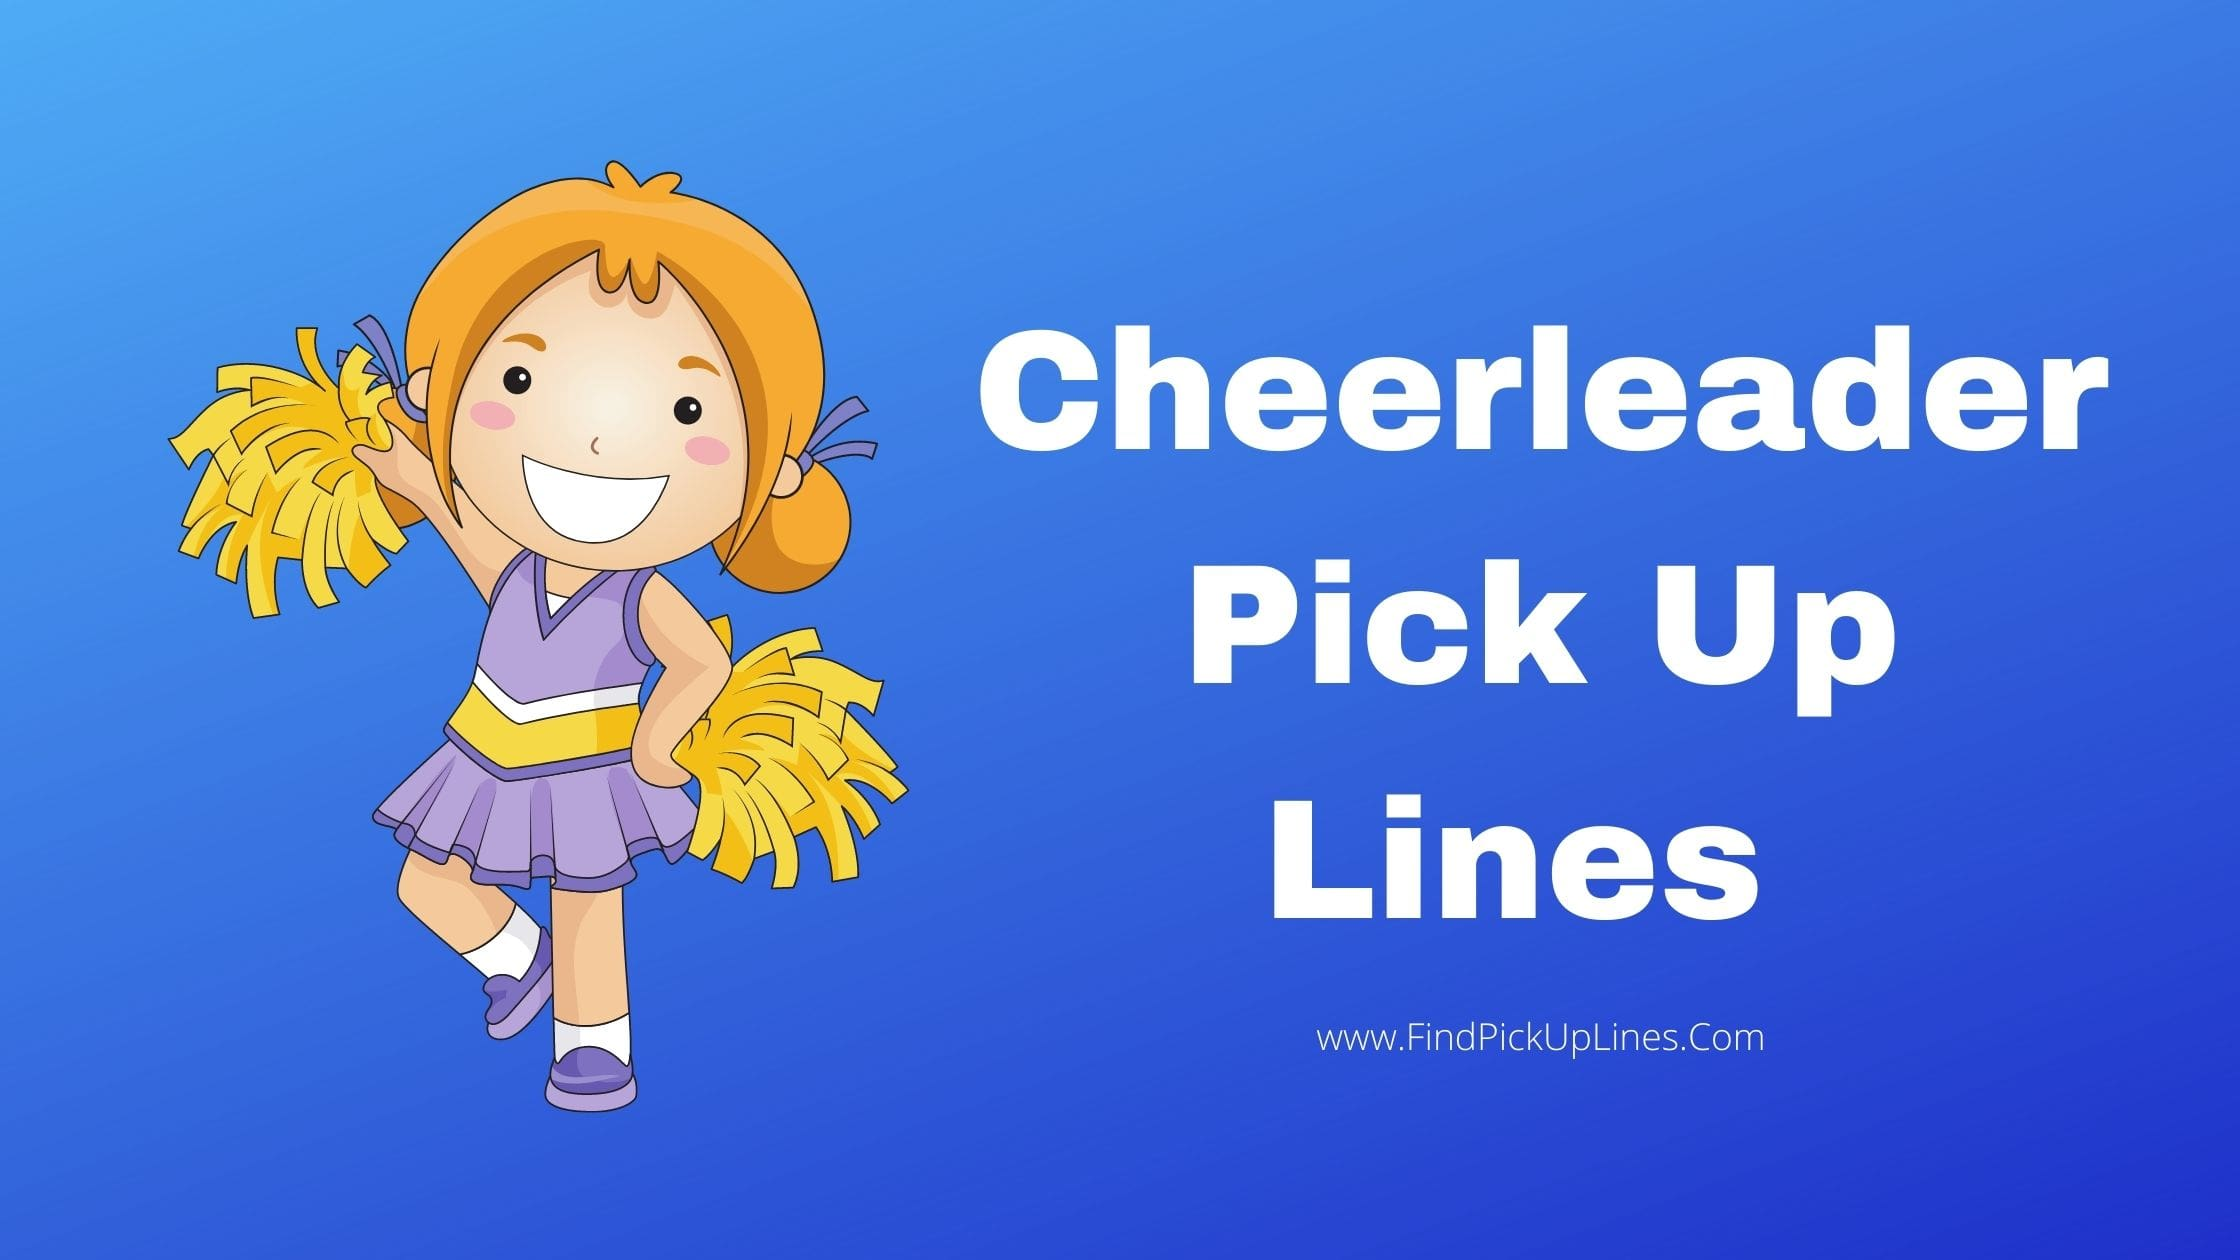 Cheerleader Pick Up Lines